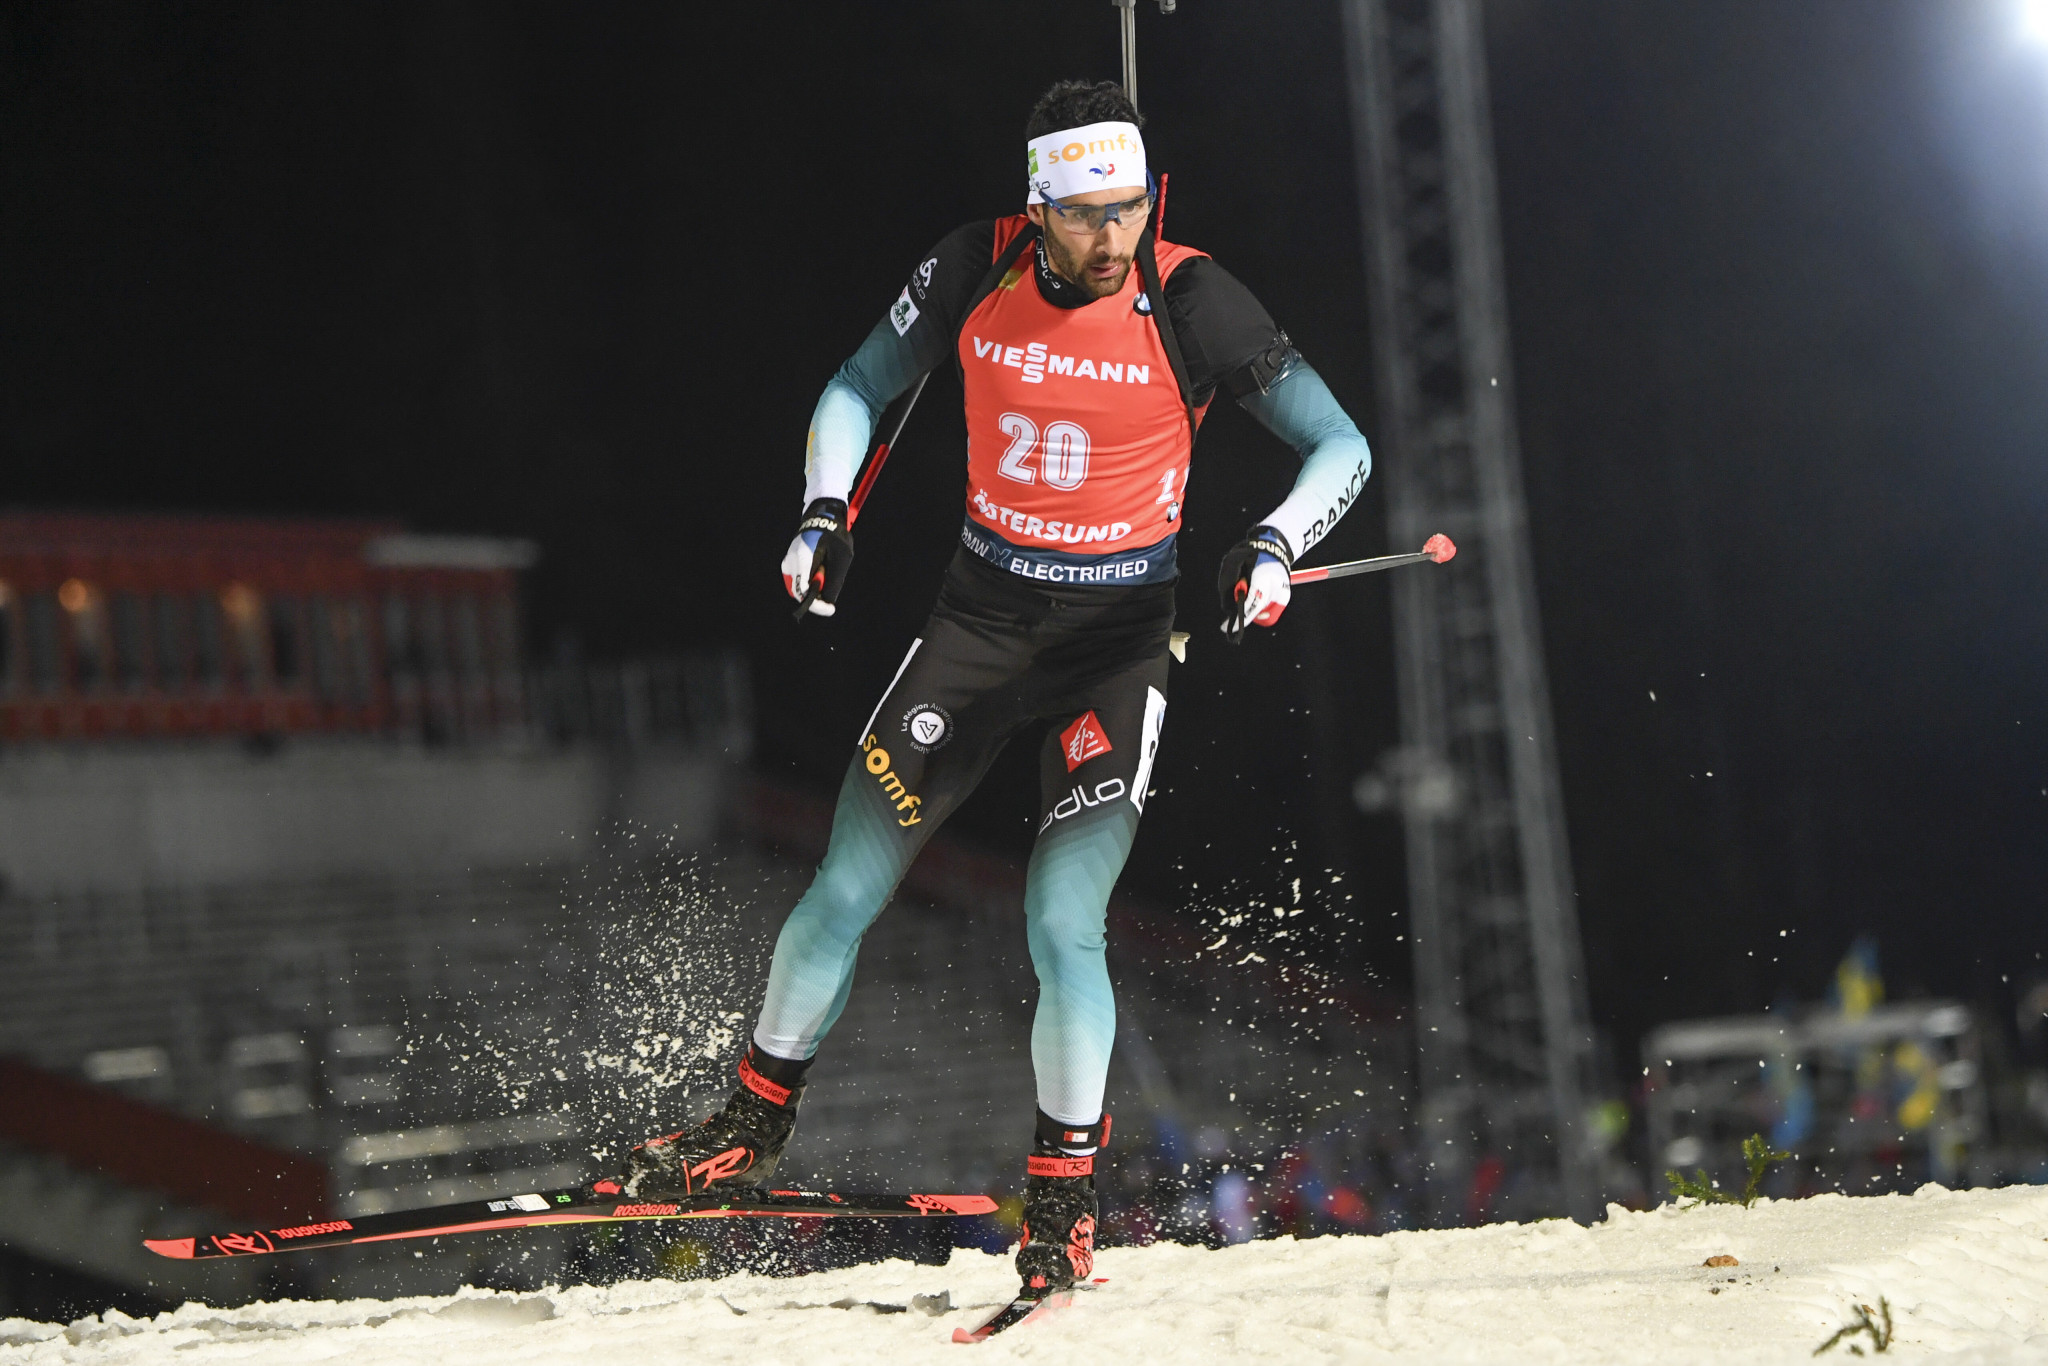 Fourcade and Wierer out to extend leads at IBU World Cup in Hochfilzen